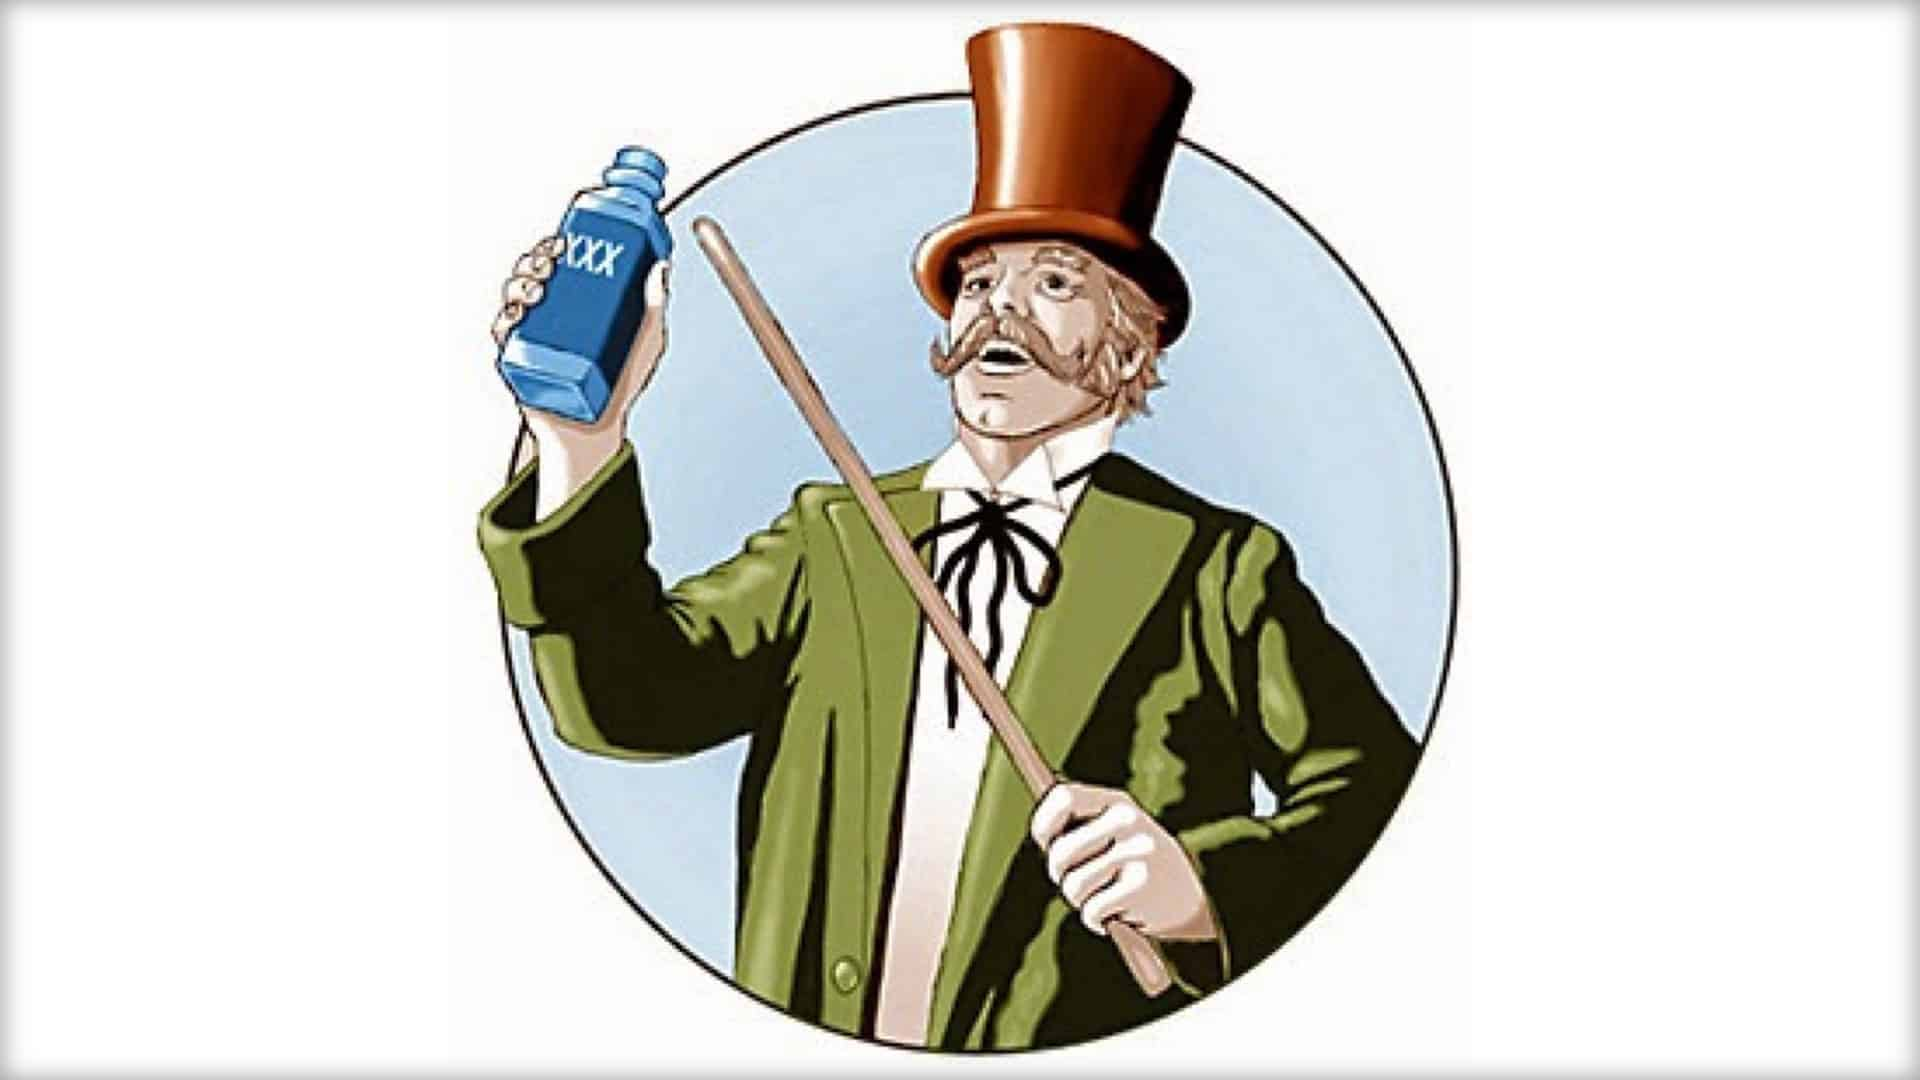 """A graphical image of a person on Victorian dress is seen holding up a blue bottle with """"XXX"""" written upon it. They are pointing at the bottle with a cane and appears to be proclaiming its benefits."""